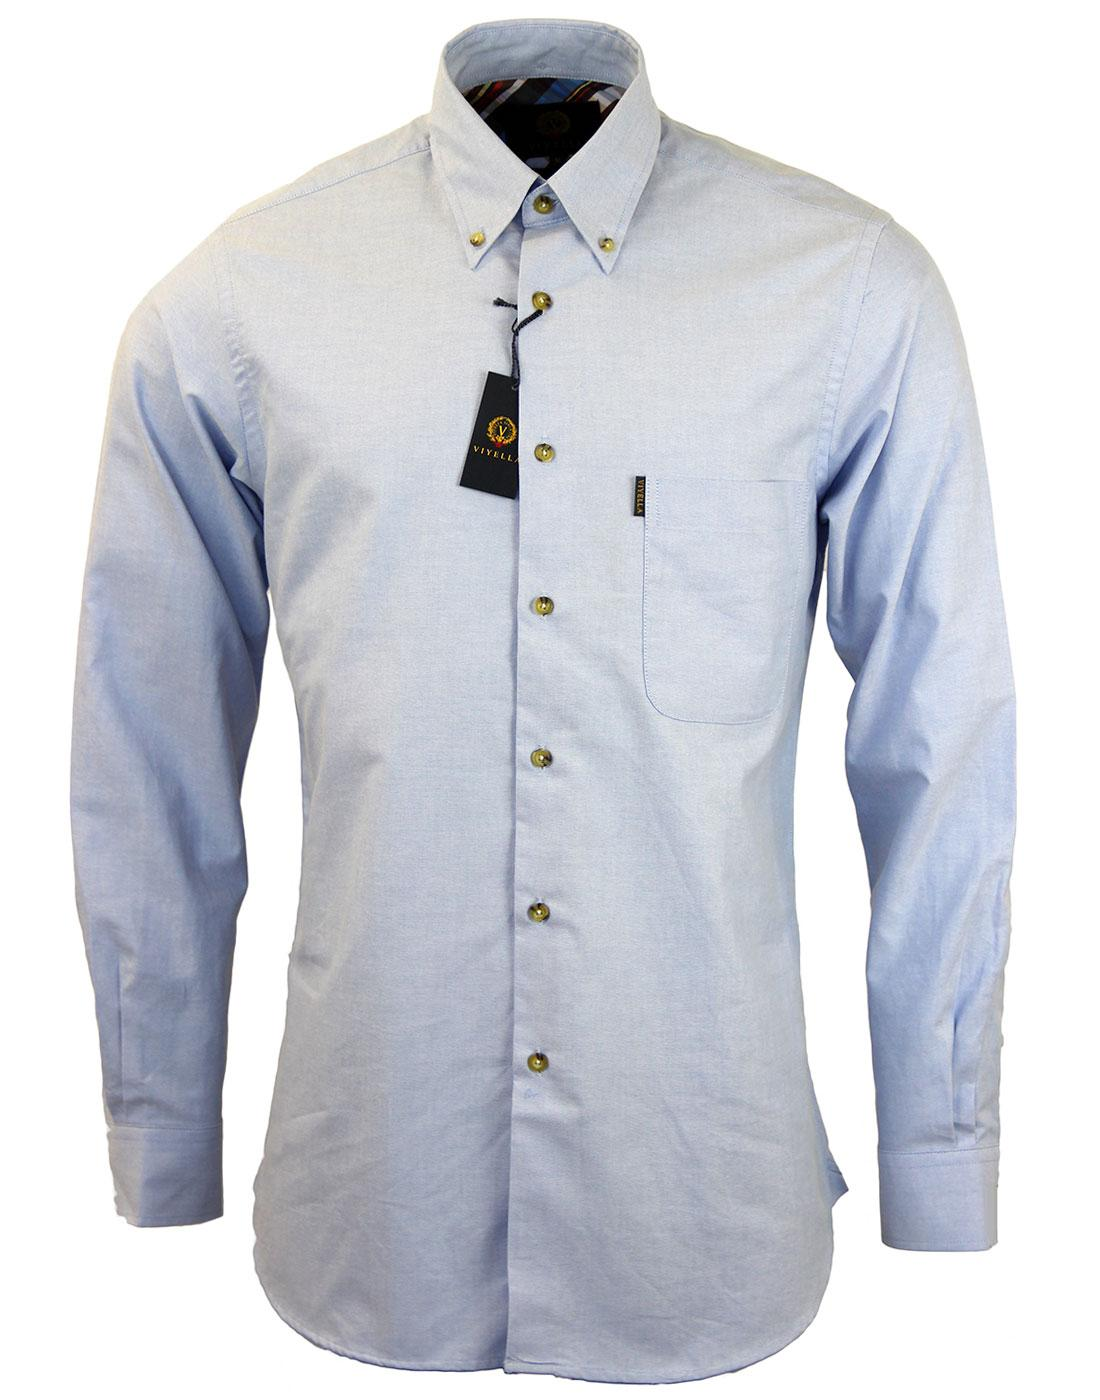 VIYELLA Retro Mod Button Down Oxford Shirt BLUE